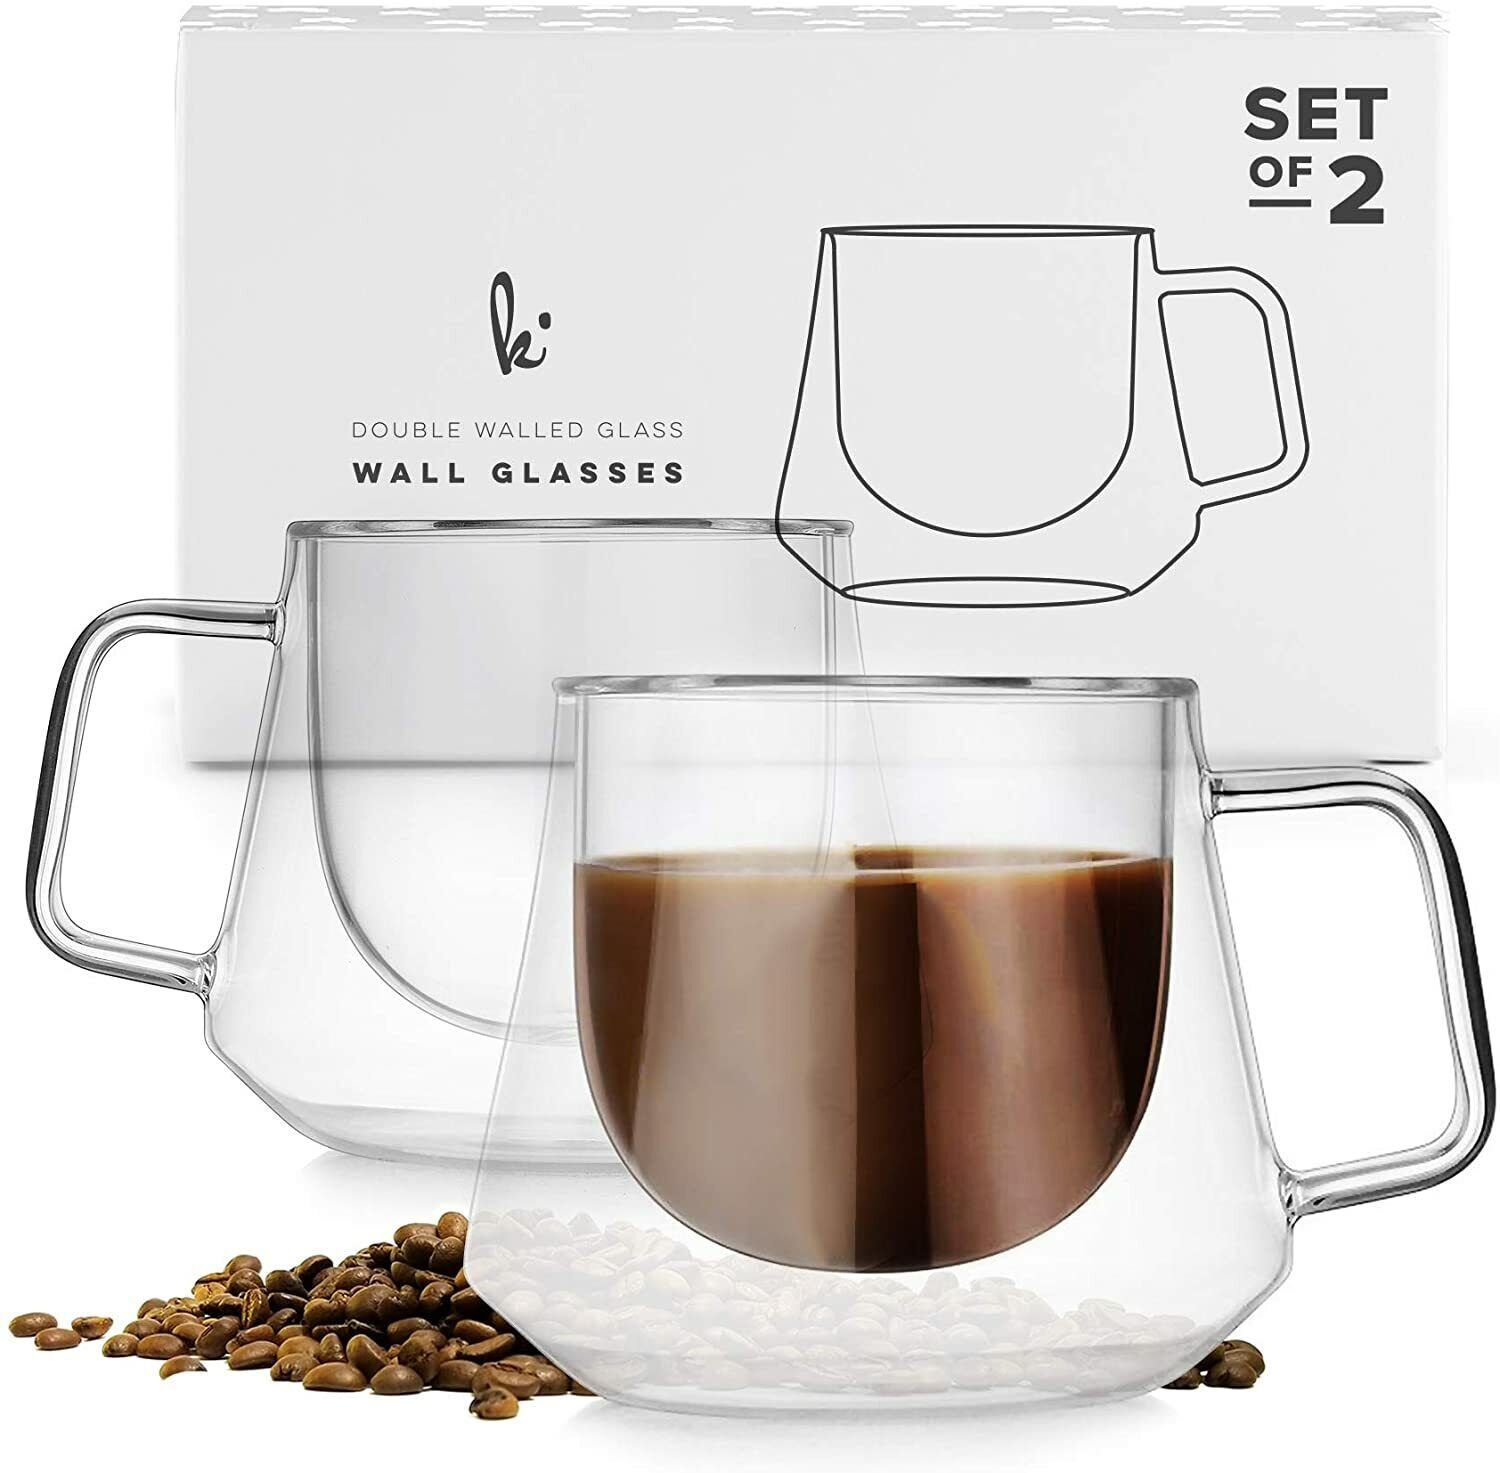 Double Wall Glass Coffee Cups 2 Pack, Diamond Shape with Handle, Set of 2, 6.7oz Glassware & Drinkware